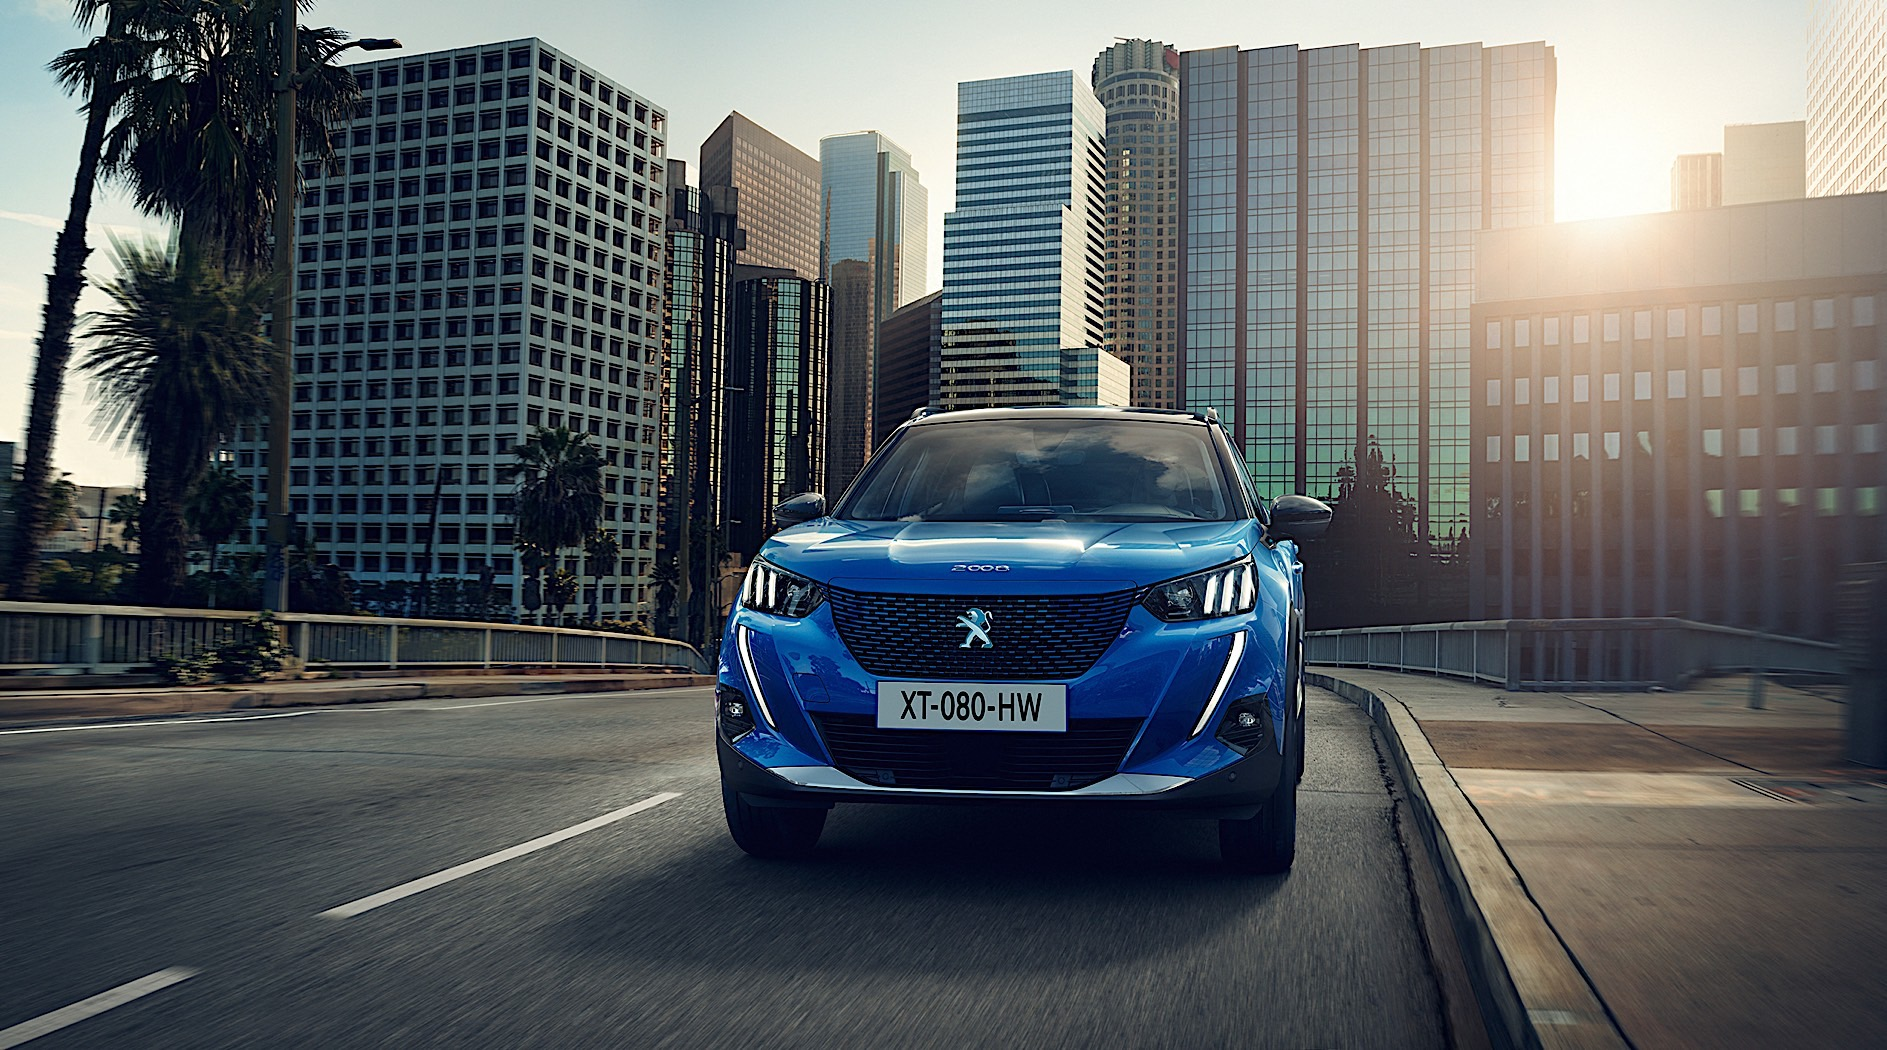 2020 Peugeot 2008 Revealed With Electric Drive And